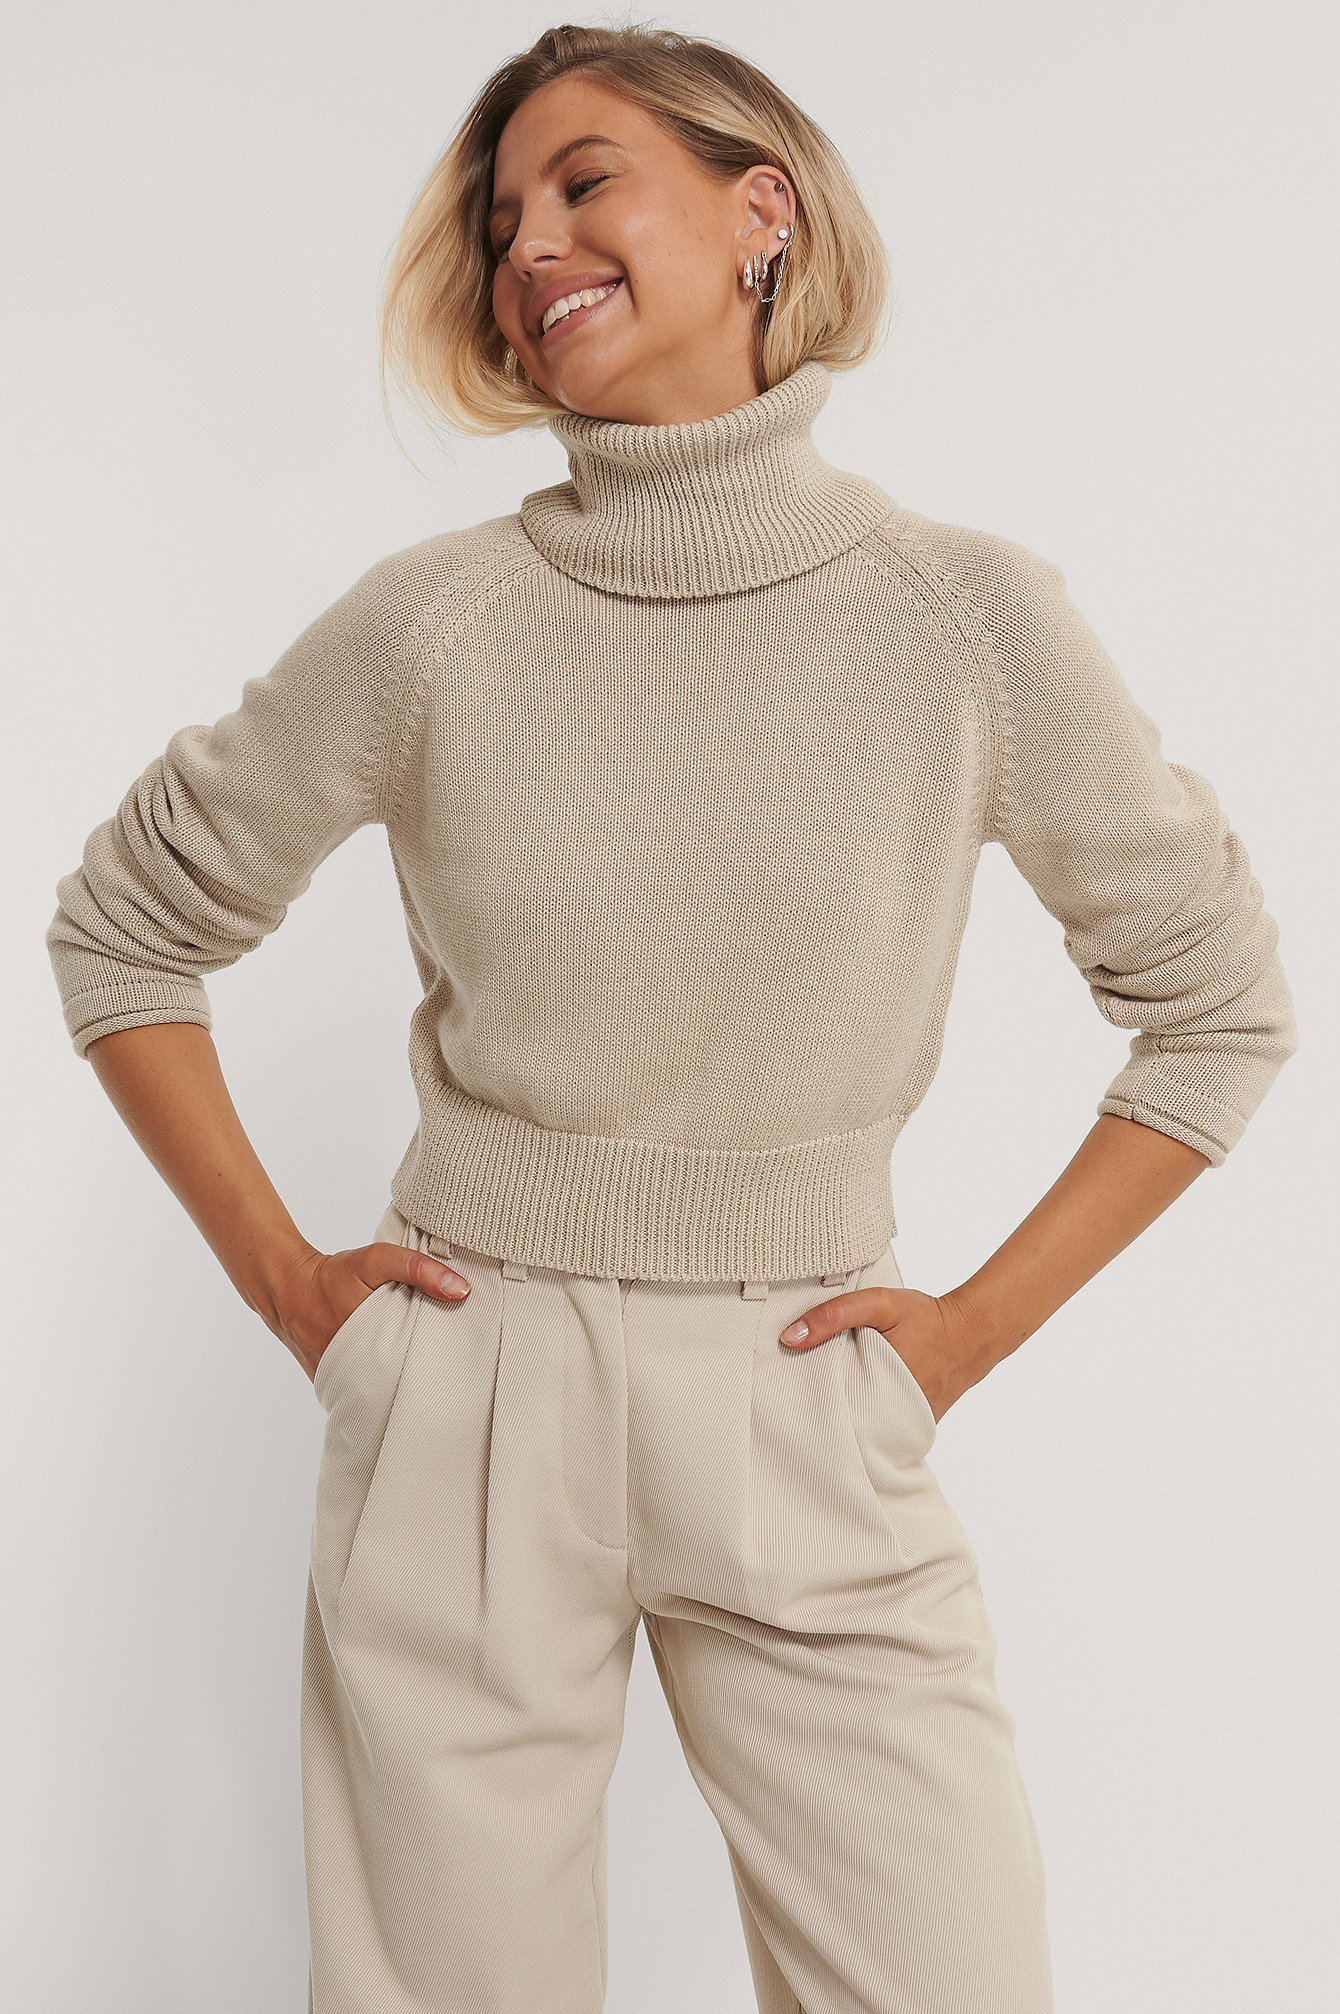 Light Beige High Neck Knitted Sweater